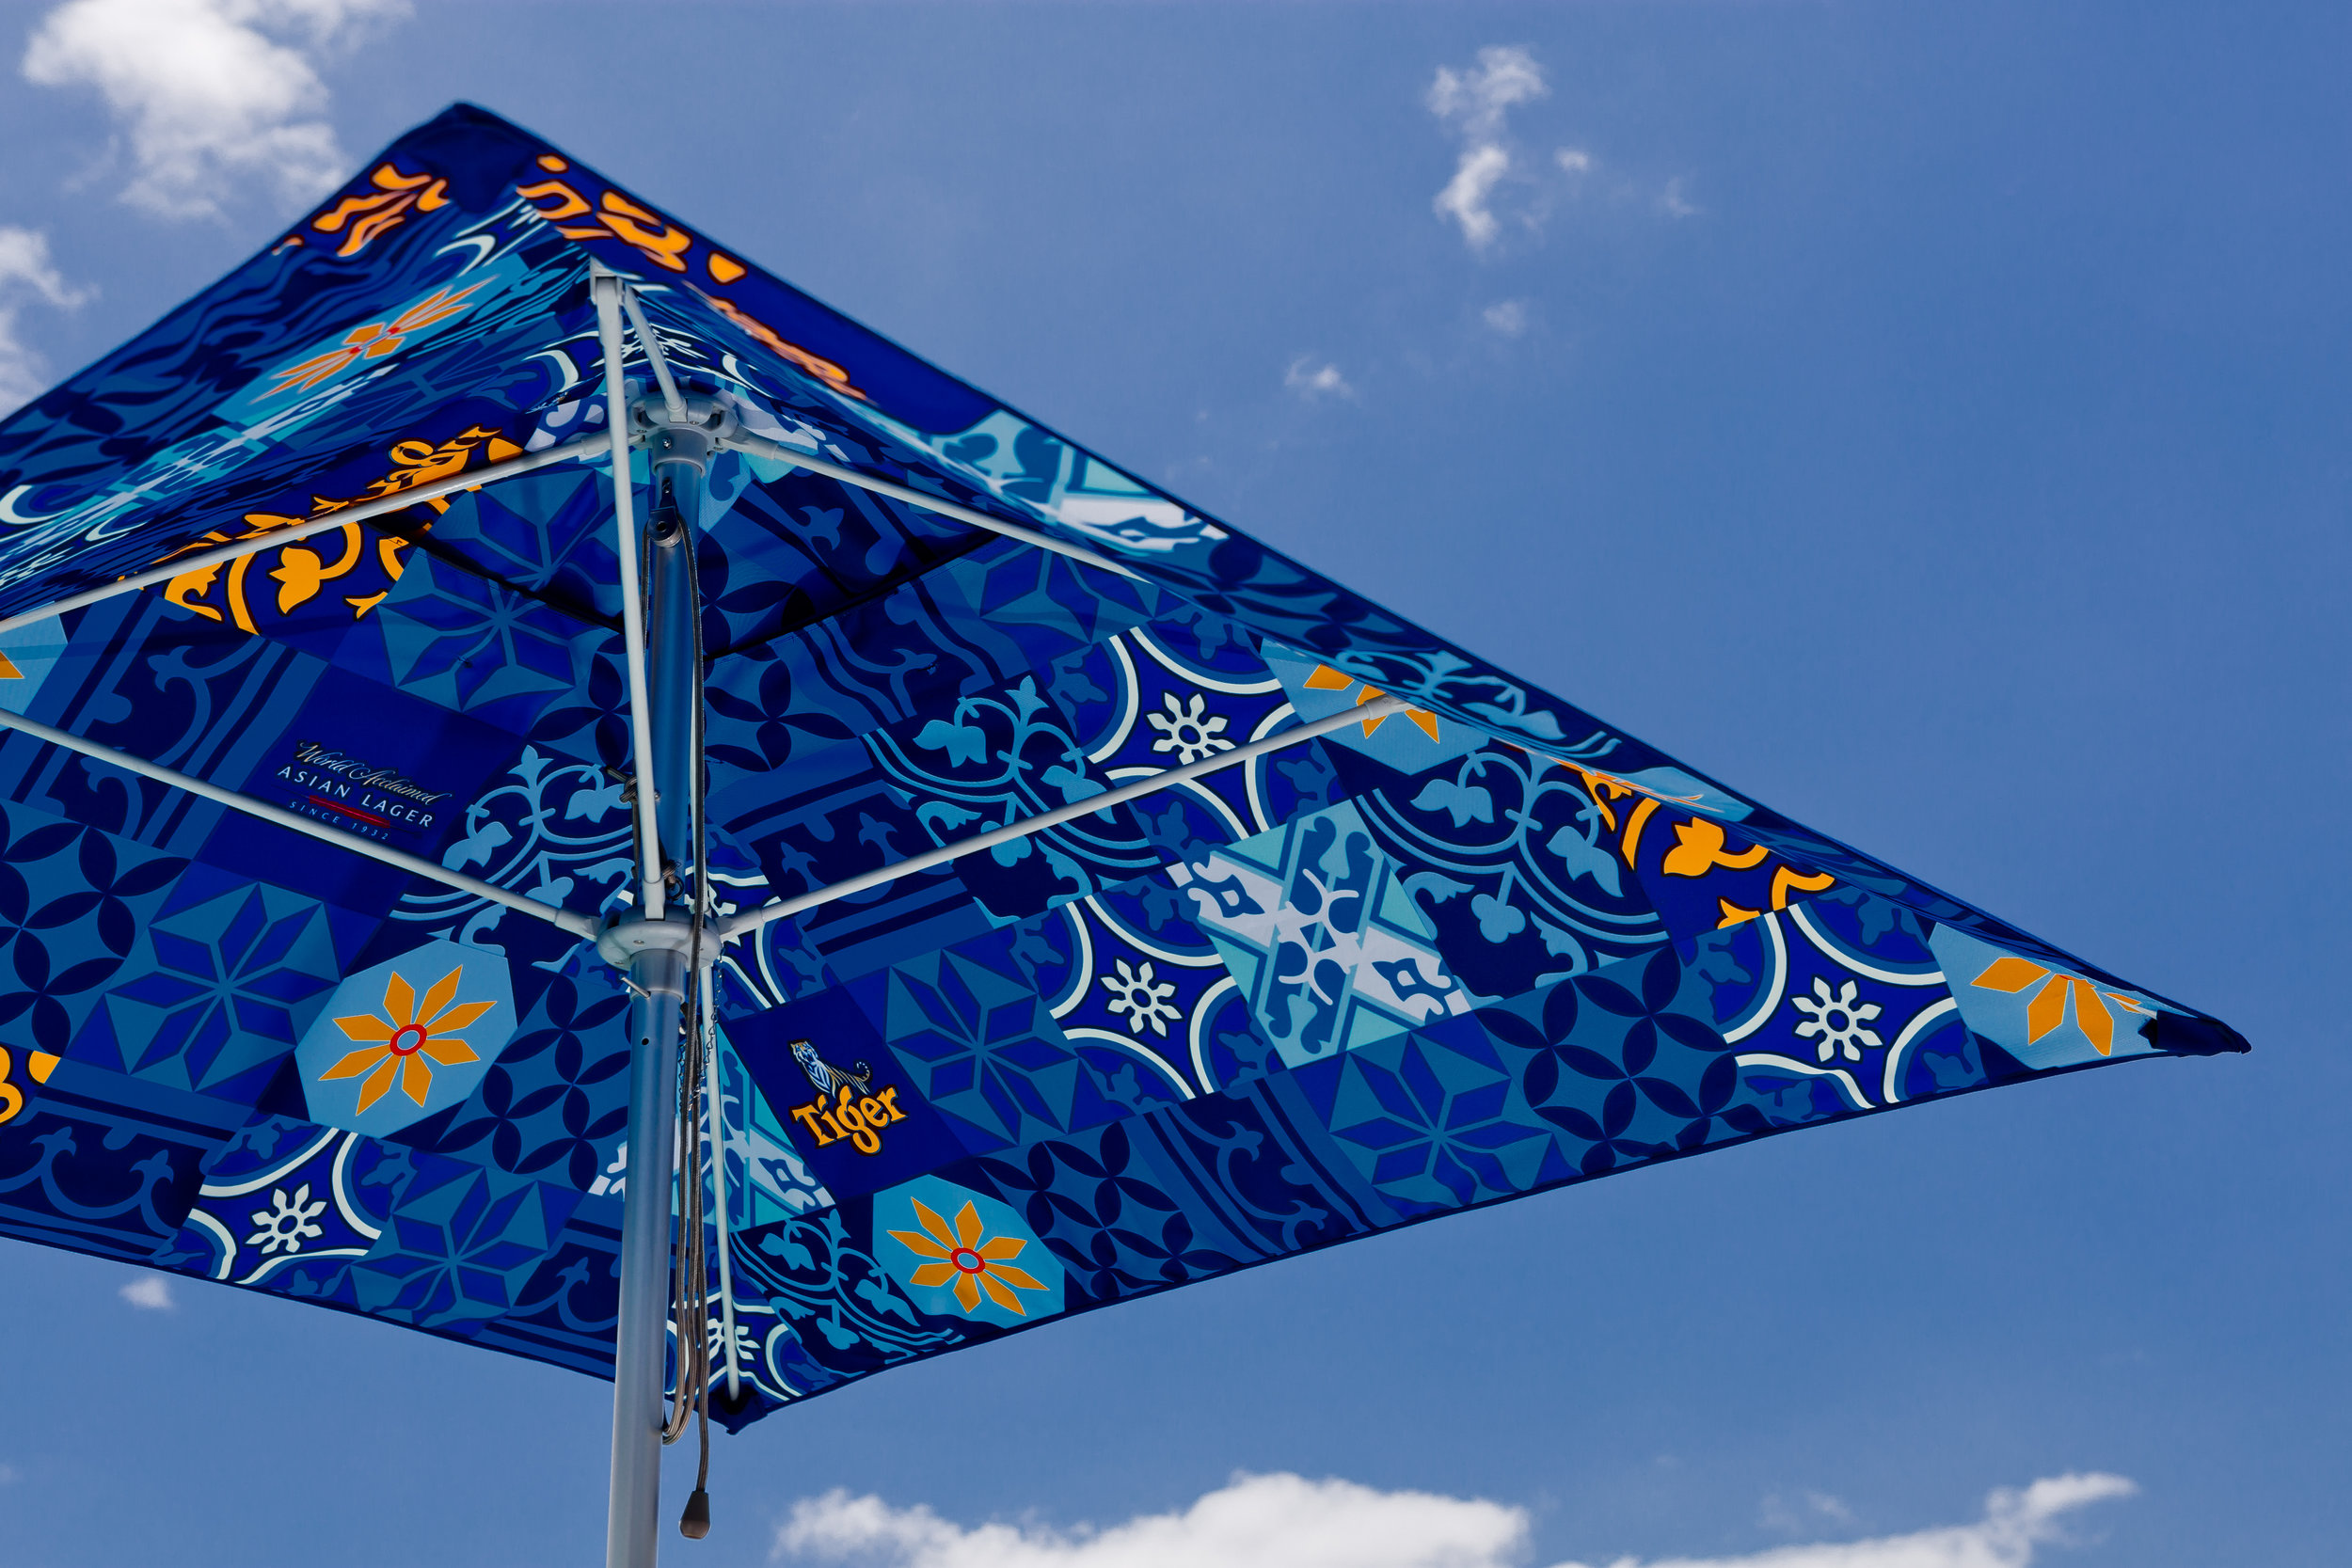 Fibreglass Printed Umbrella 1.9m Square.jpeg